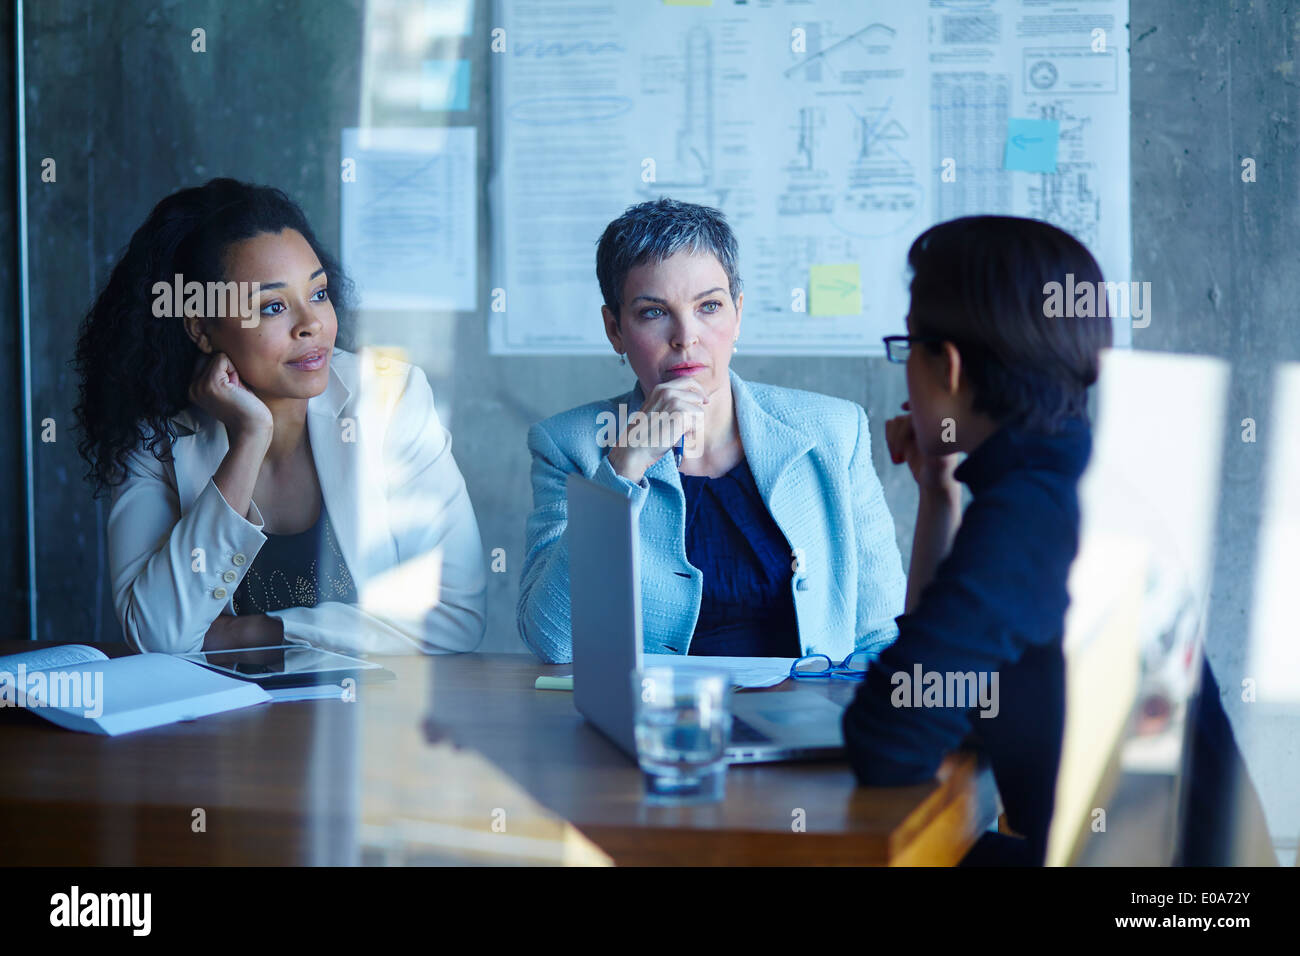 Three businesswomen discussing ideas in boardroom - Stock Image